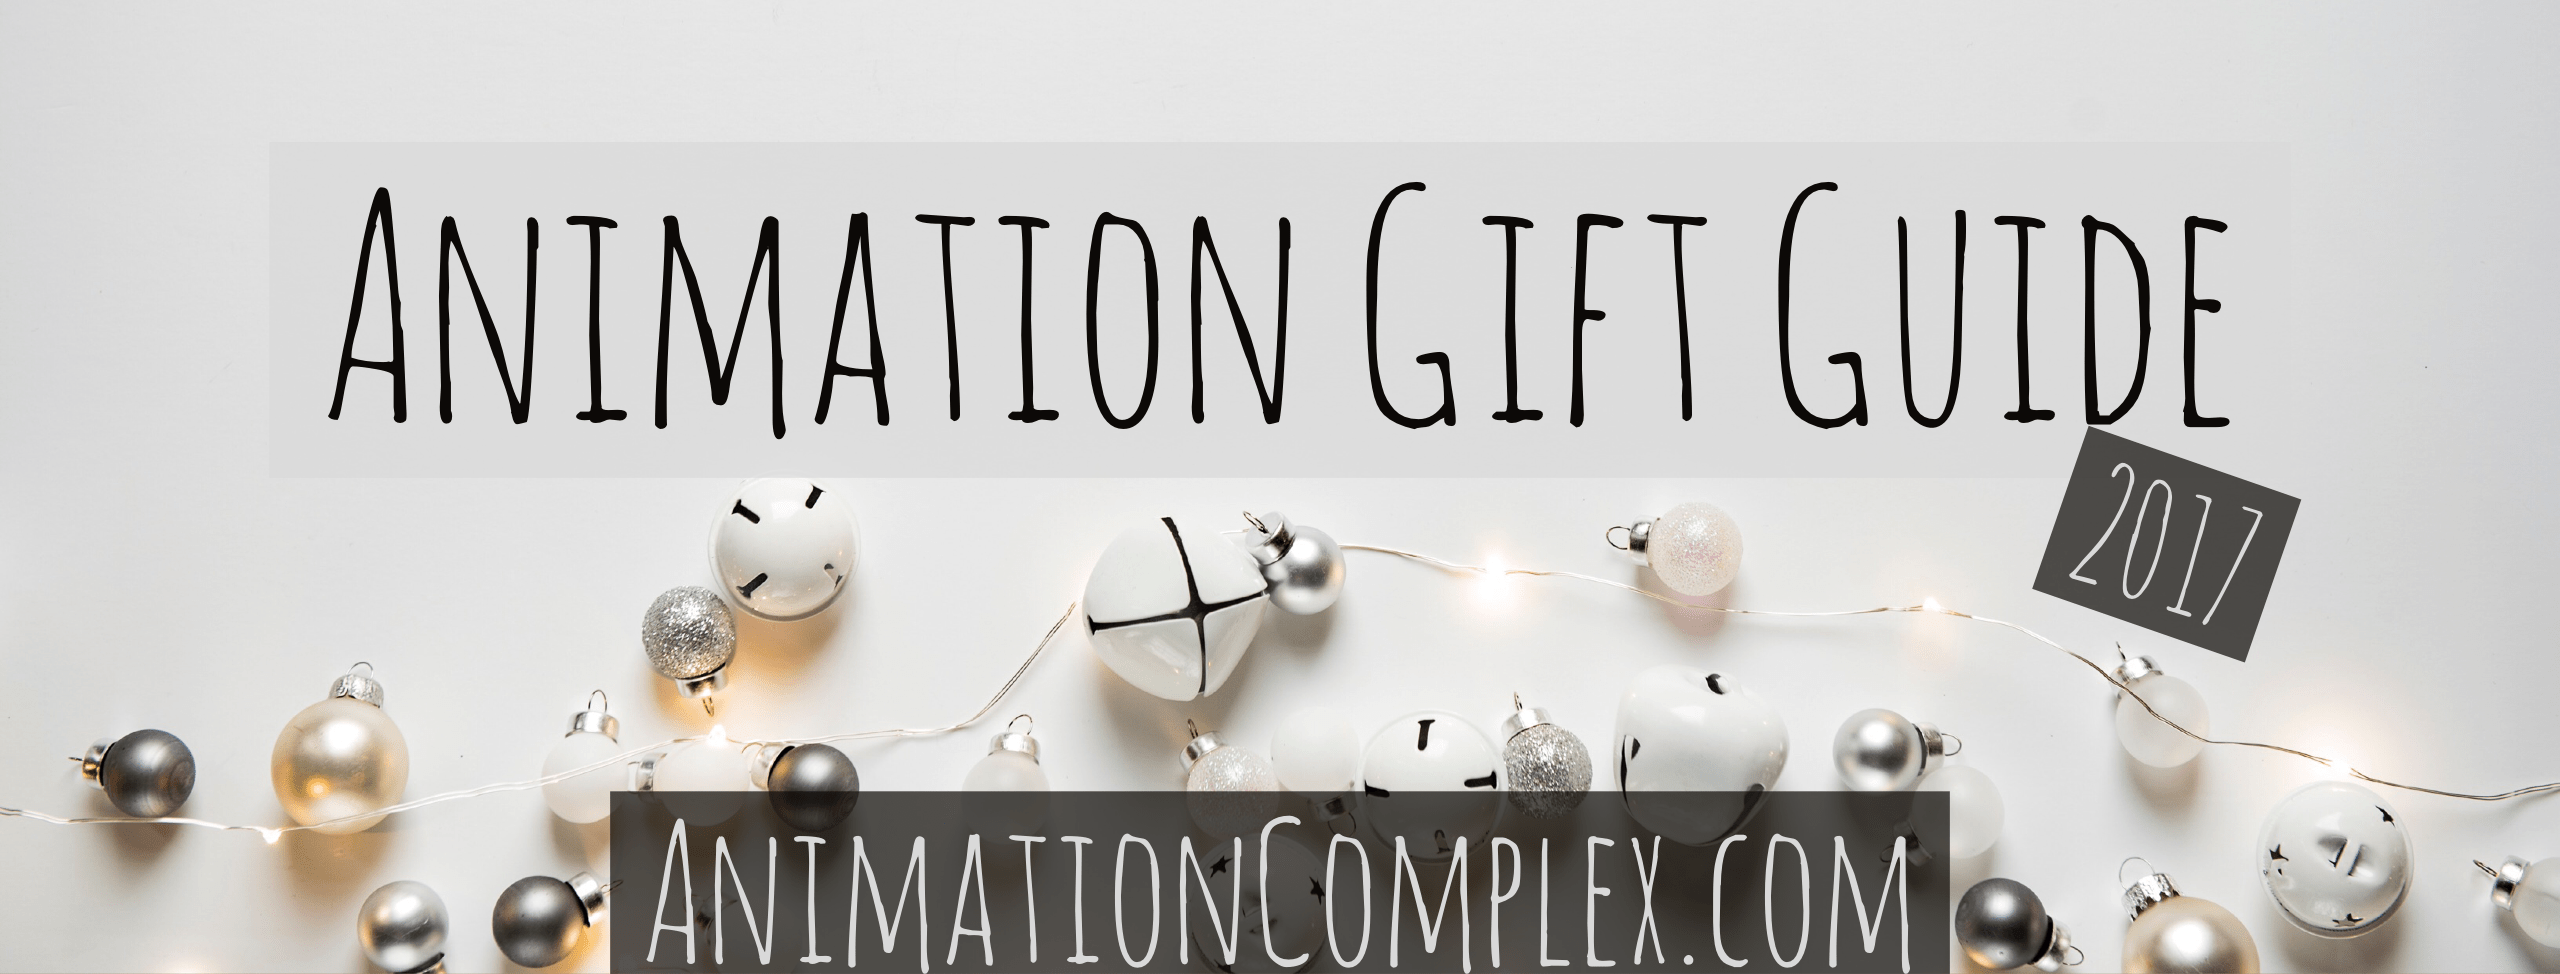 2017 Animation Gift Guide